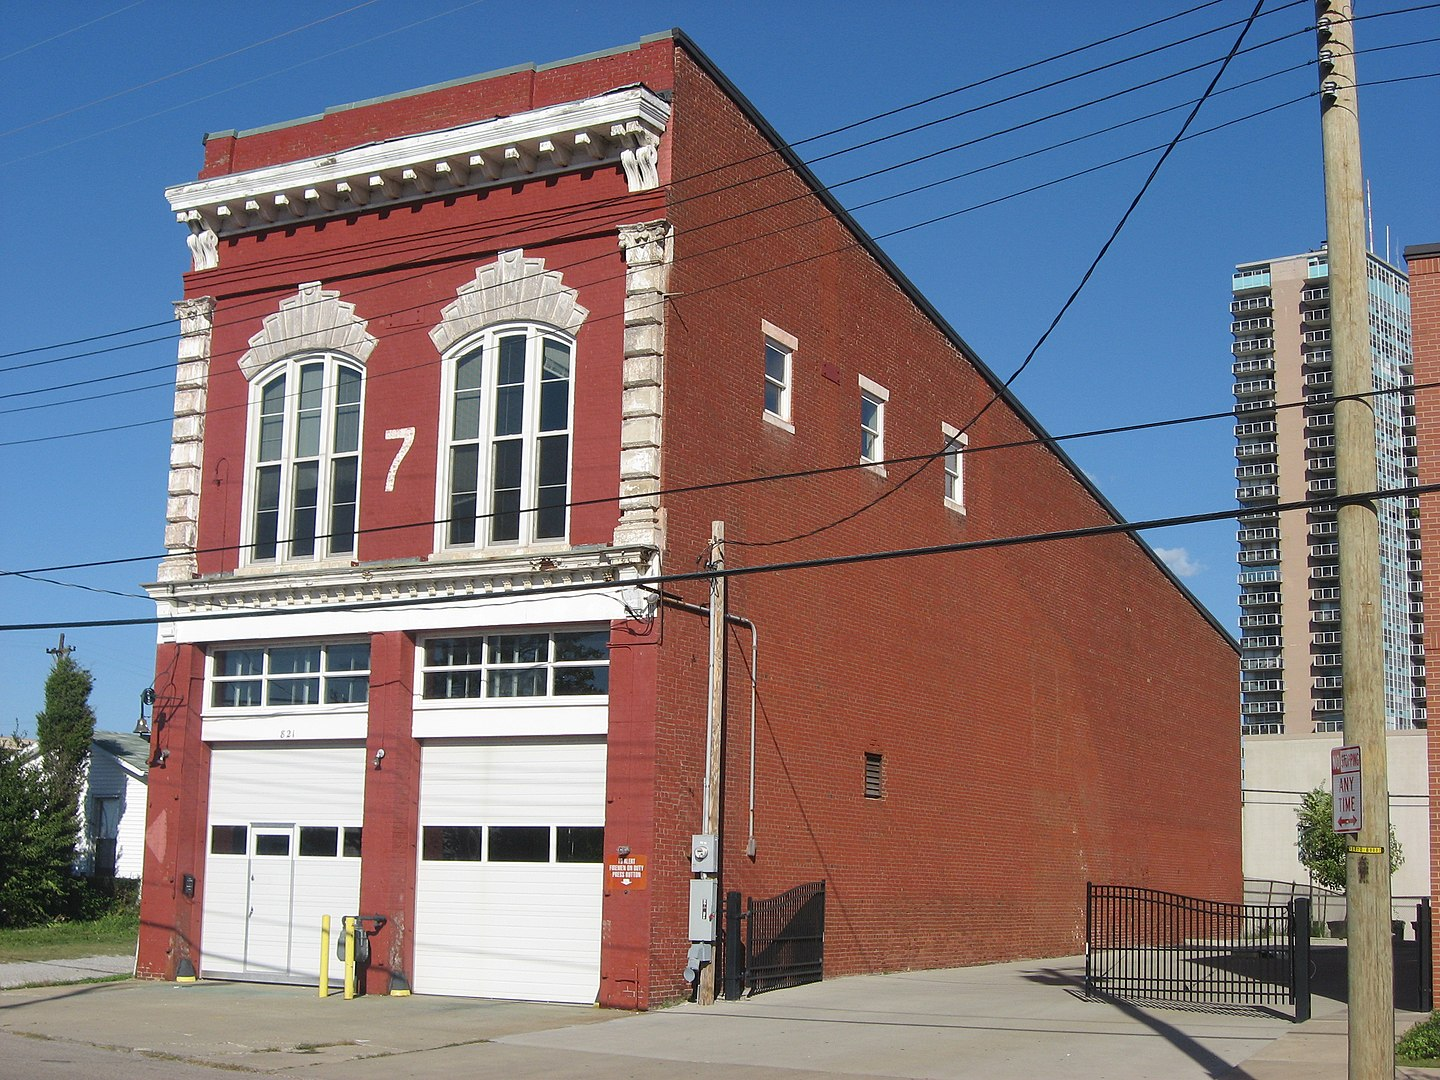 Steam Engine Company No. 7 in Old Louisville